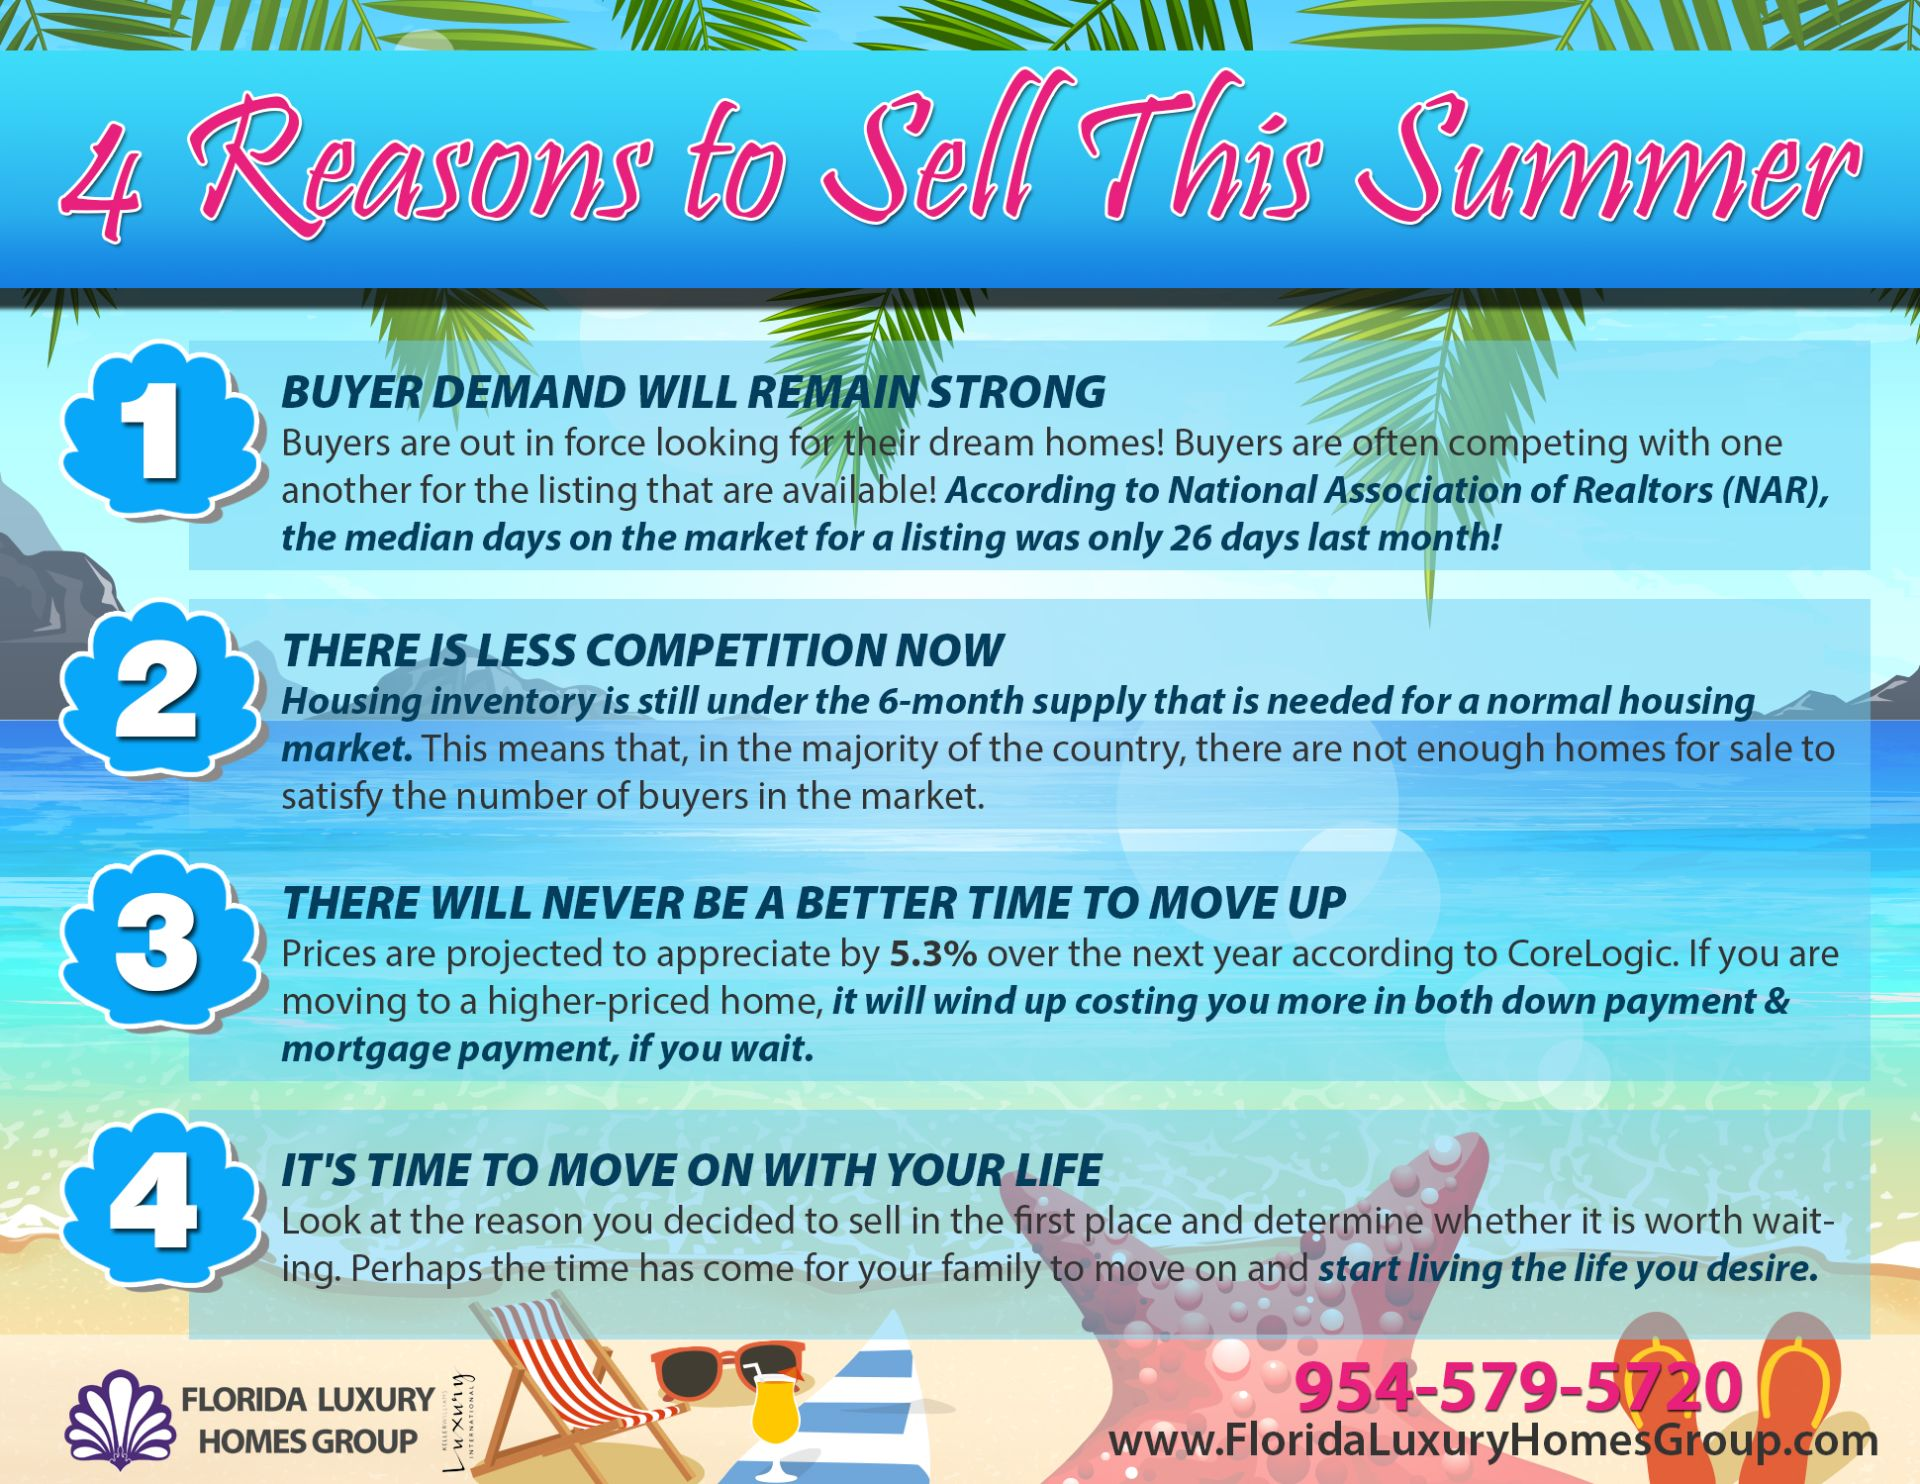 4 Big Reasons To Sell This Summer